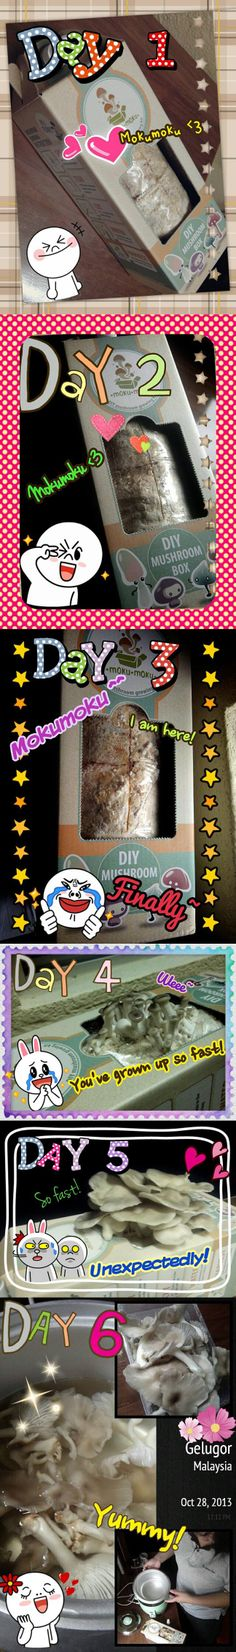 Yap Yi Hui's mushroom growing journey.  We can feel her excitement in the collection she posted on fb. Greenie thumbs up!  - mokumoku.my